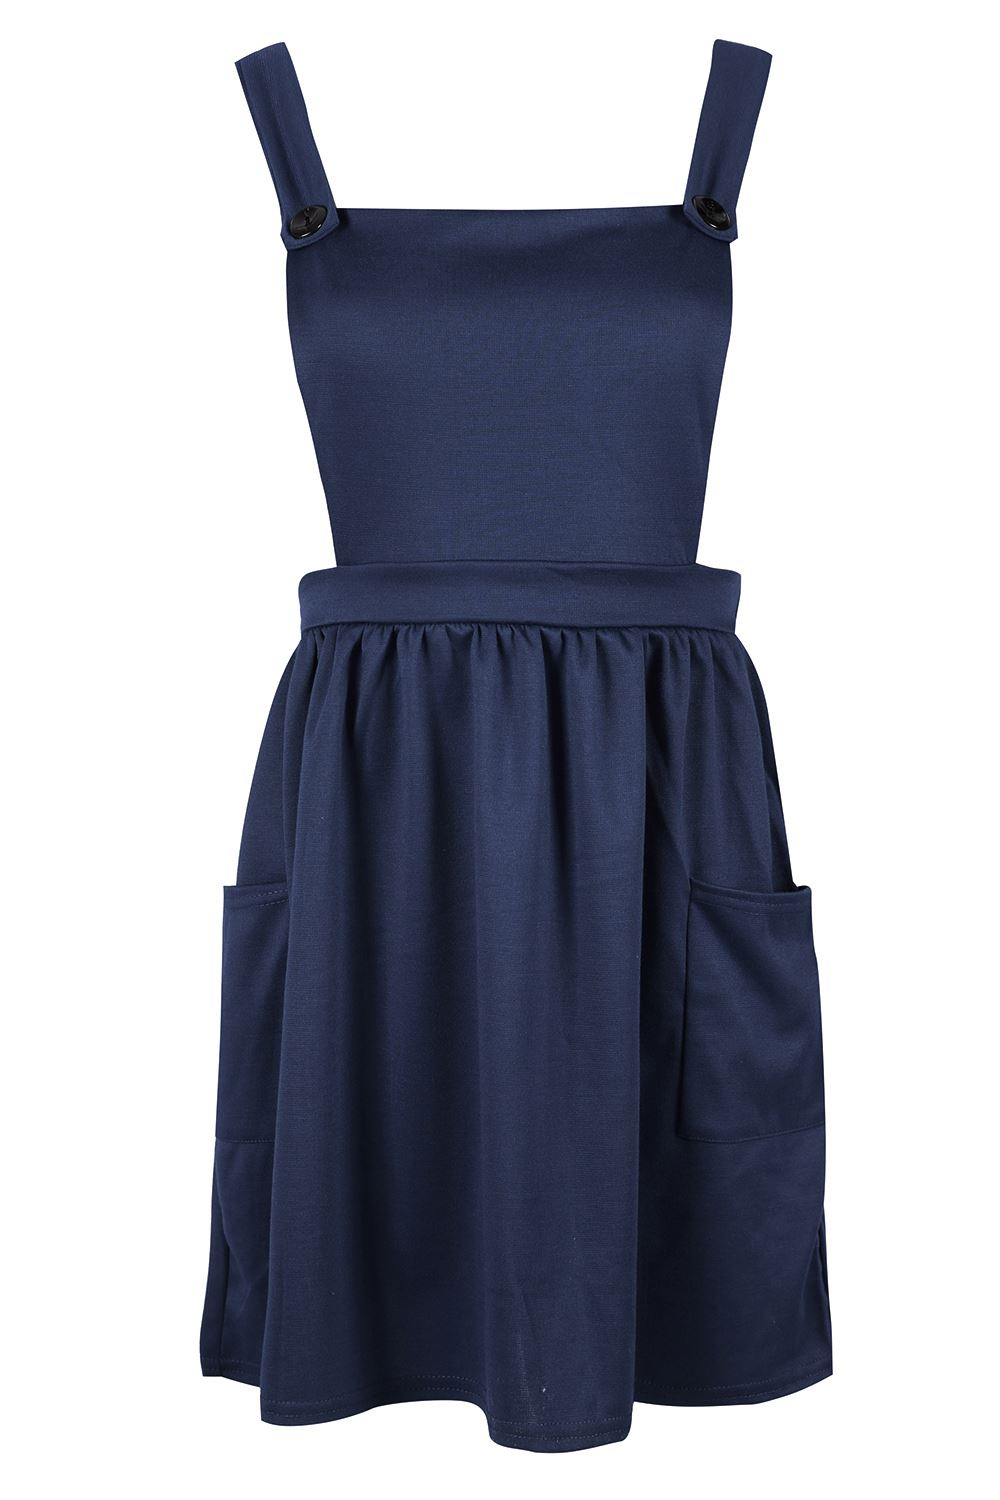 Womens-Ladies-Dungarees-Pinafore-Cross-Back-Strappy-Skater-Flared-Dress-Playsuit thumbnail 4